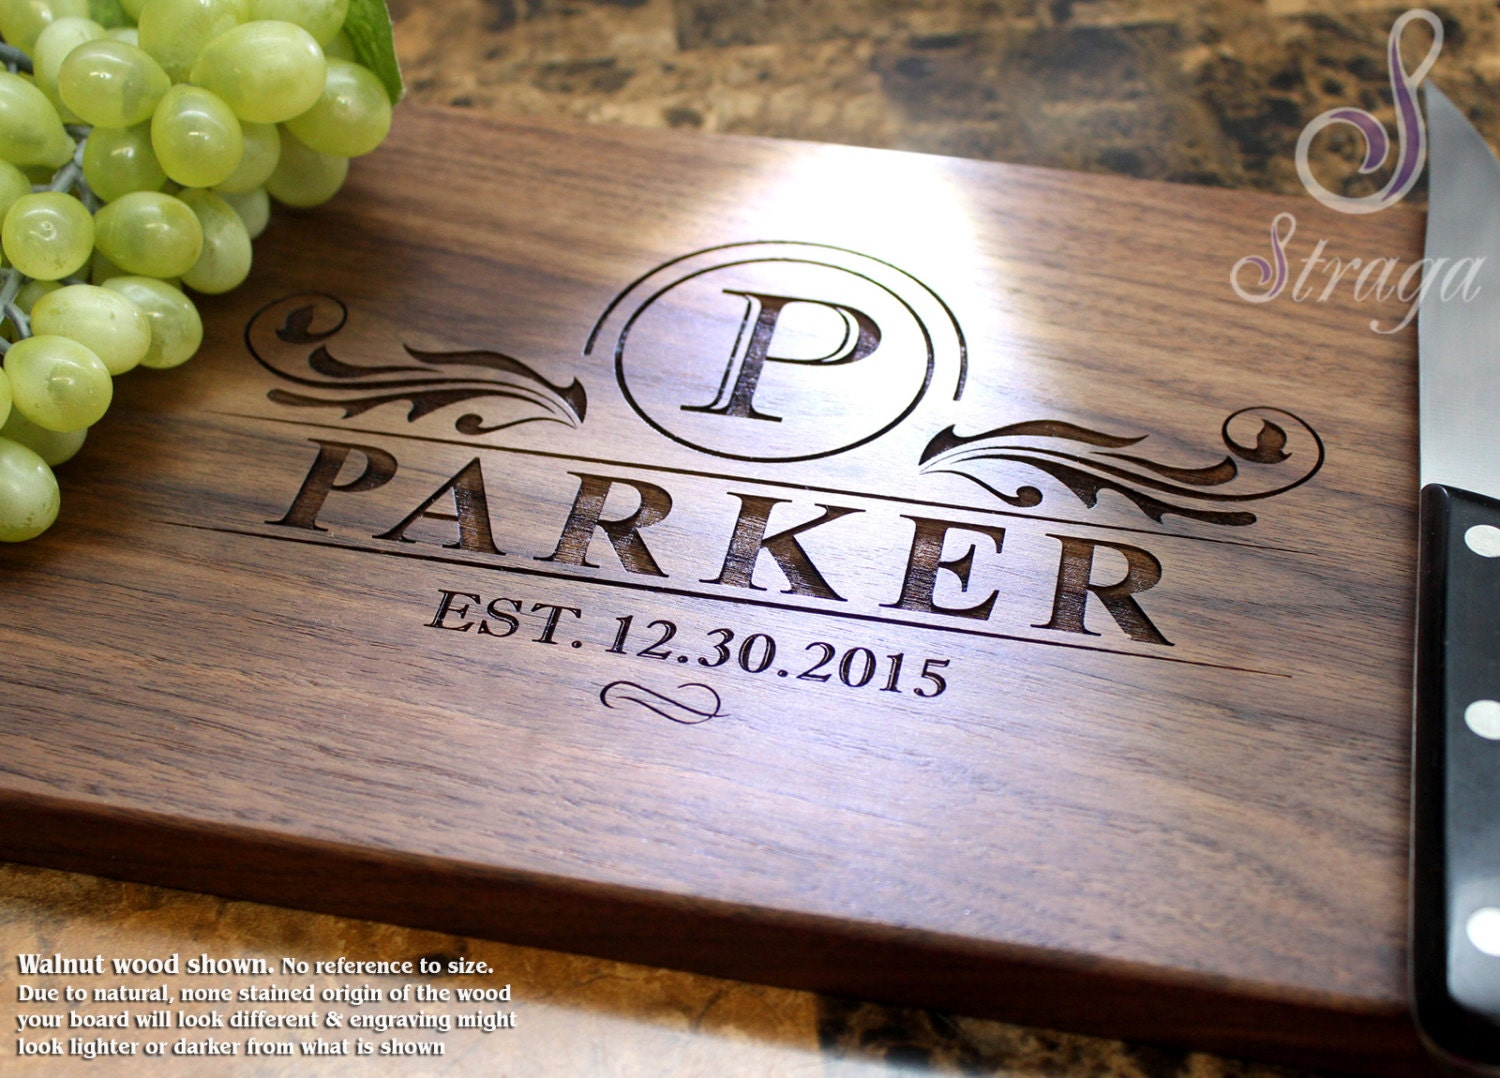 Engraving Wedding Gifts: Personalized Engraved Cutting Board Wedding Gift